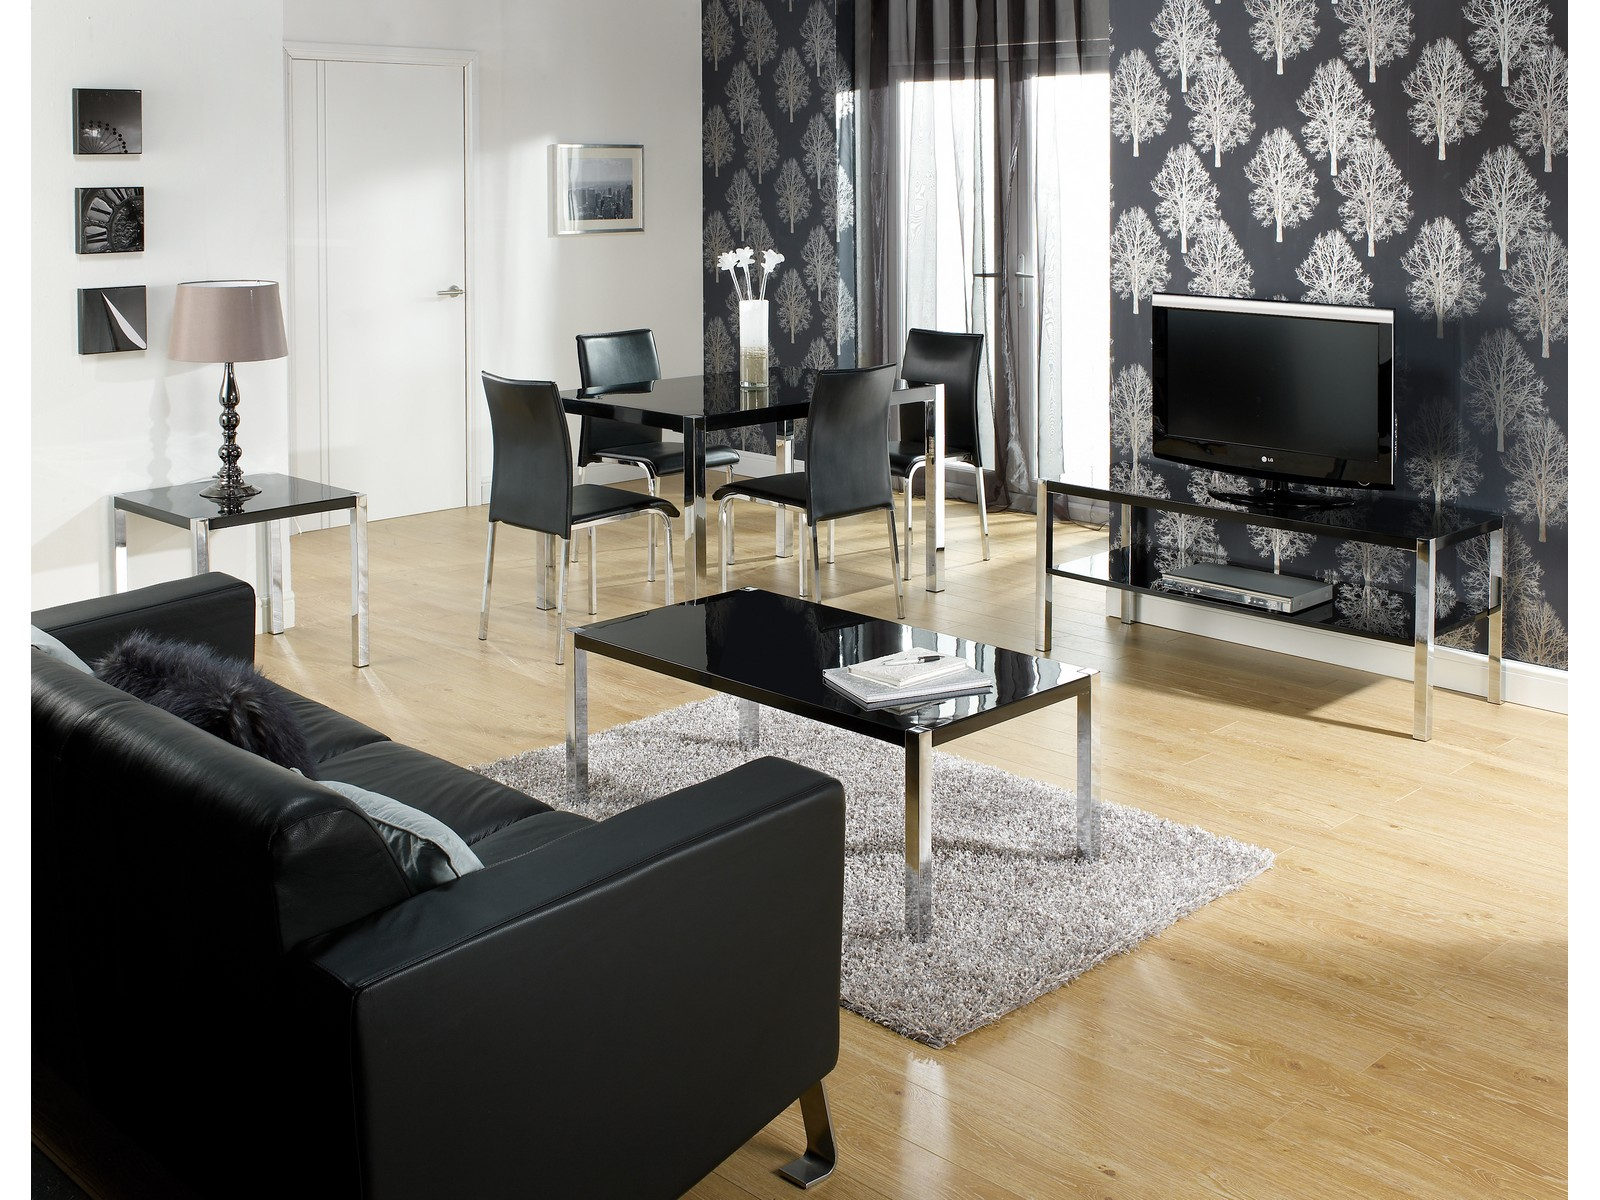 Stupendous Details About Novello Hi Gloss Living Room Furniture Dining Sets Tables Tv Stand Black White Download Free Architecture Designs Scobabritishbridgeorg